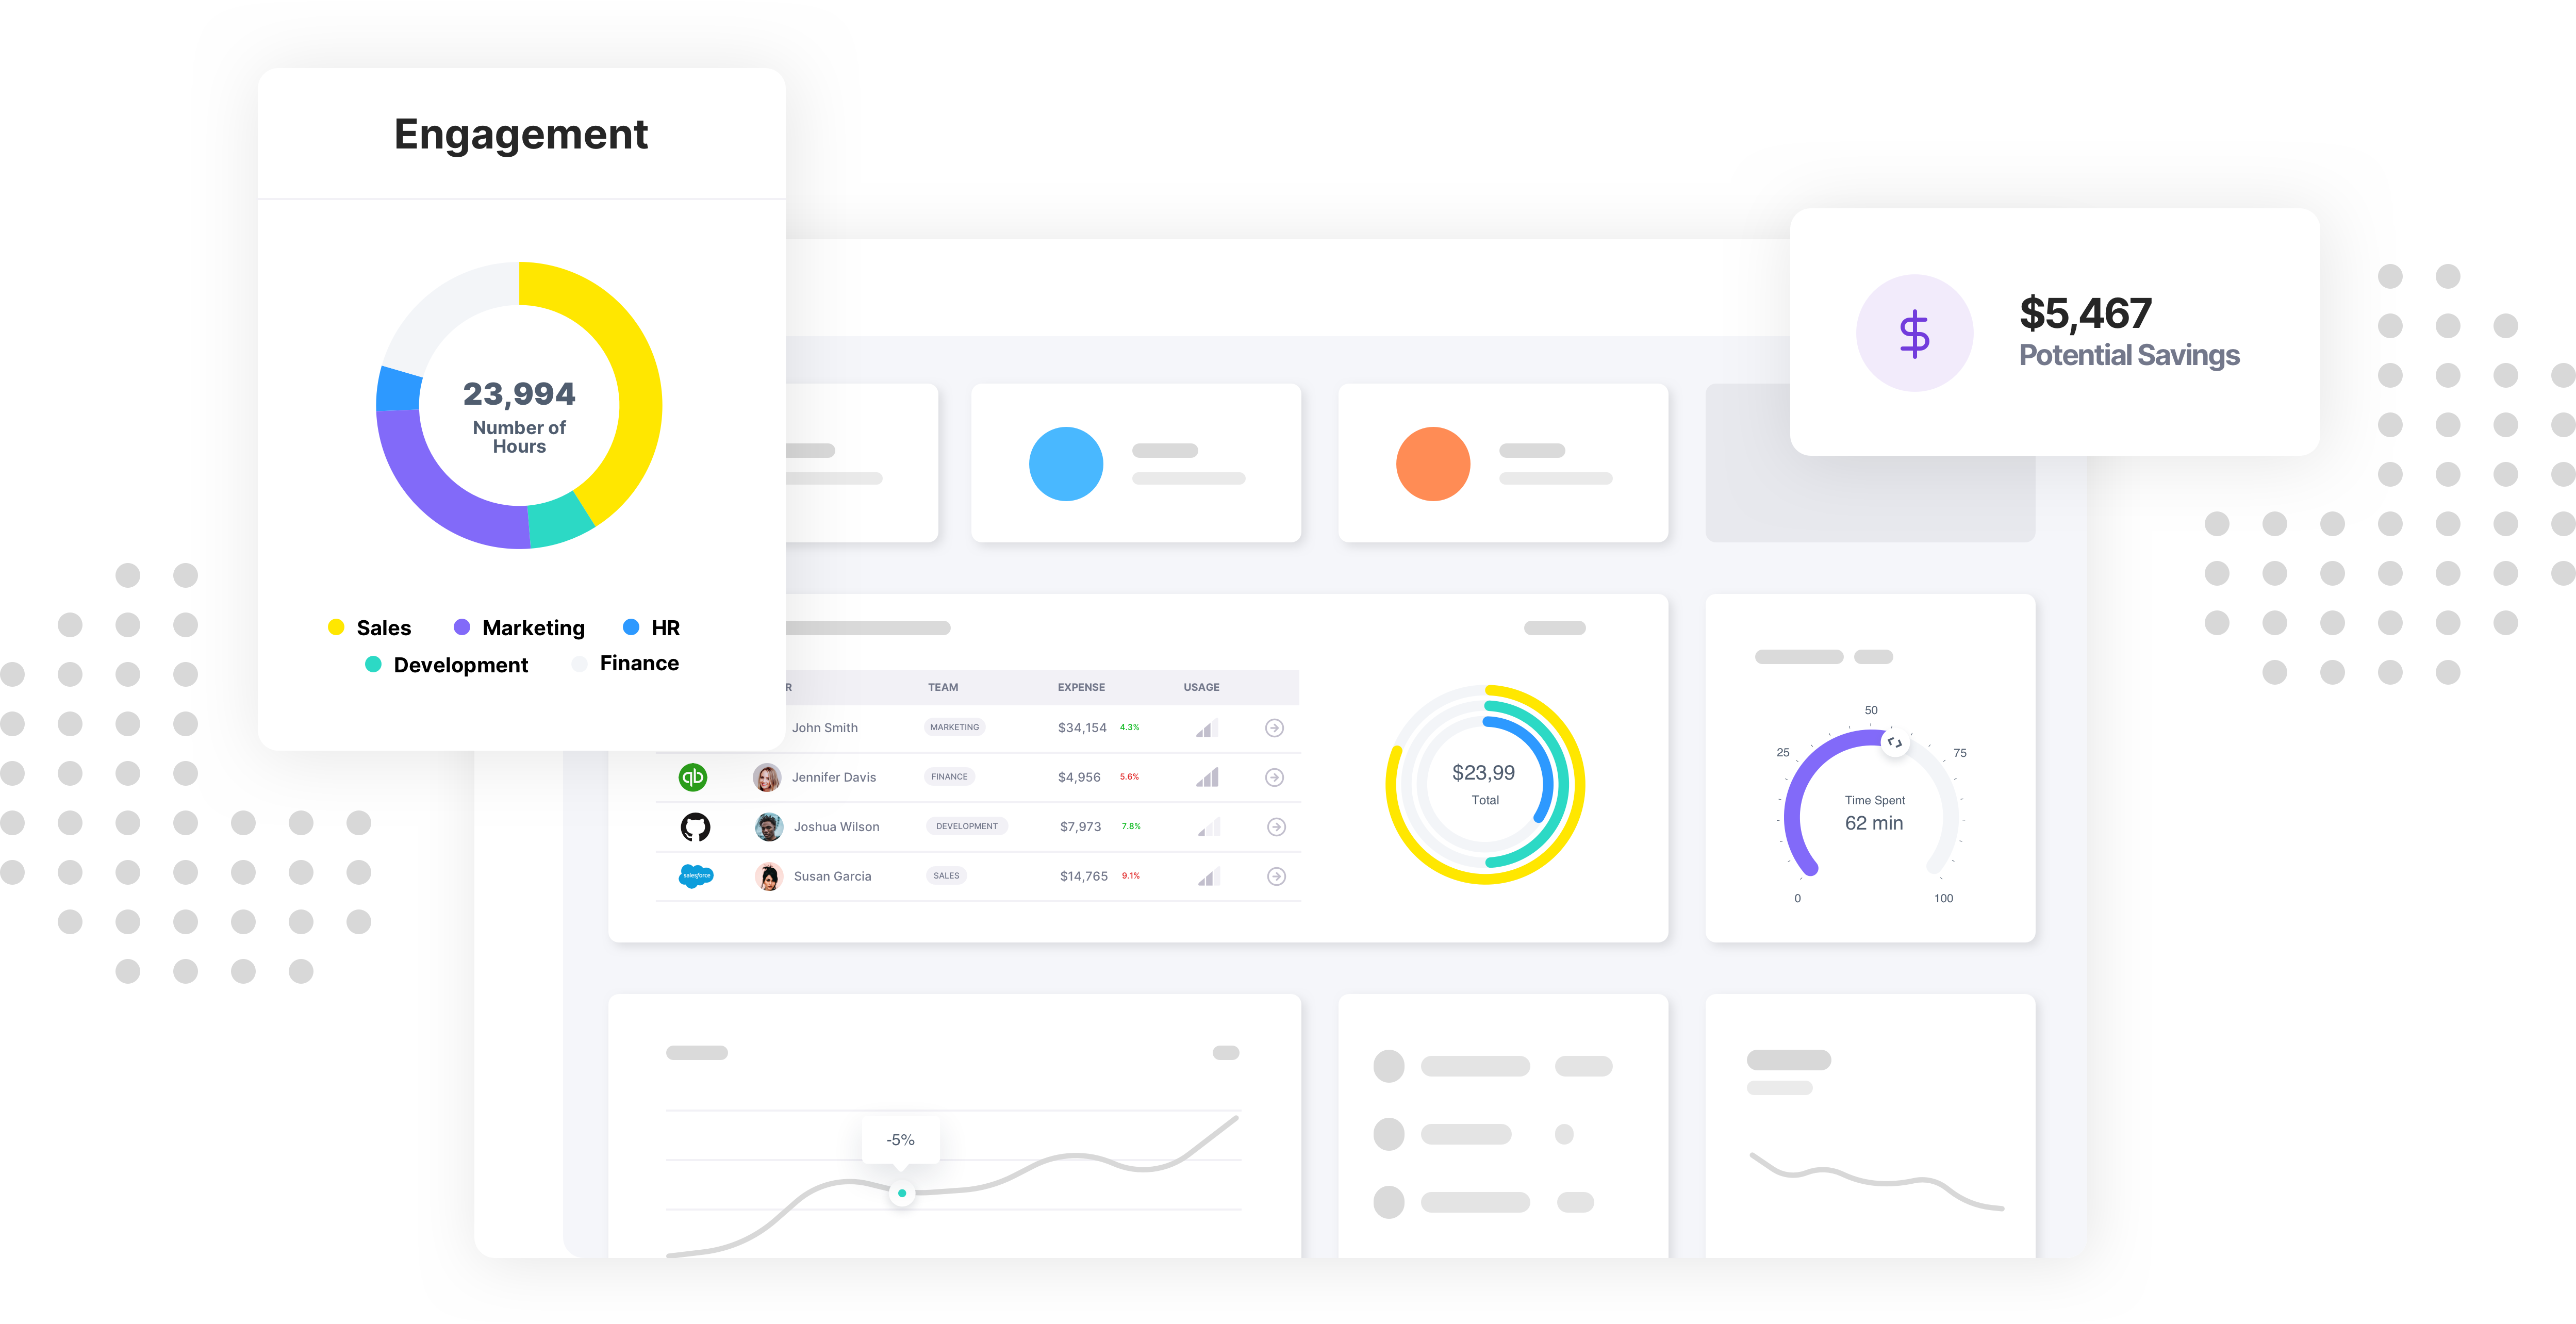 Hero image - Uncover SaaS value to drive engagement and productivity